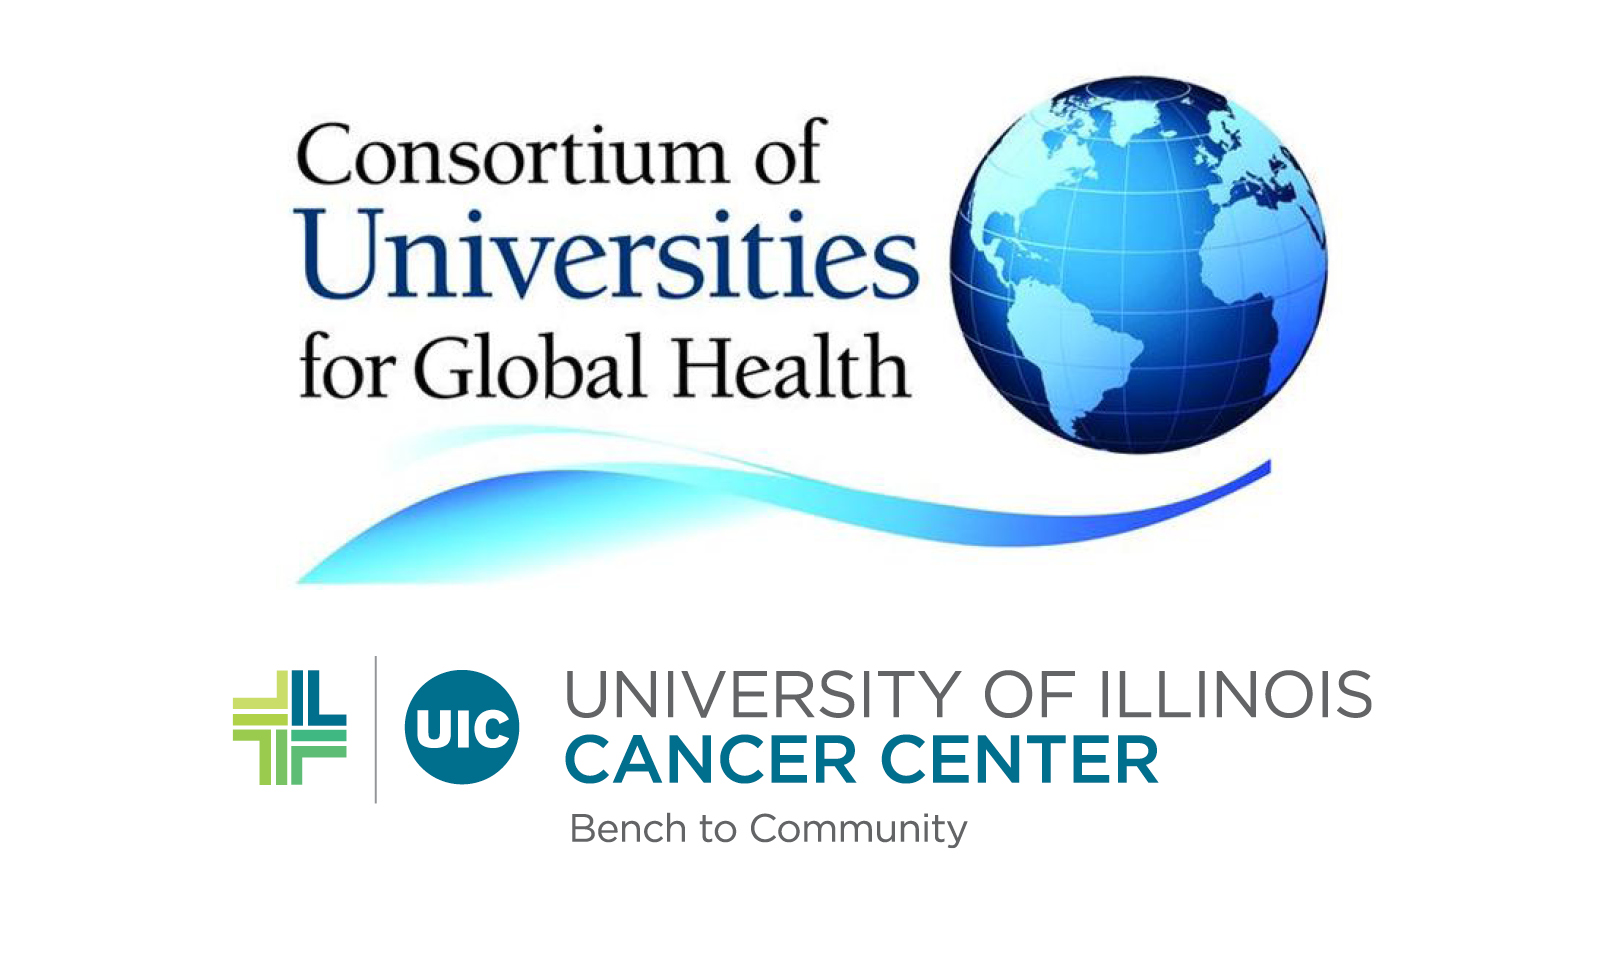 Consortium of Universities for Global Health UI Cancer Center Bench to Community.